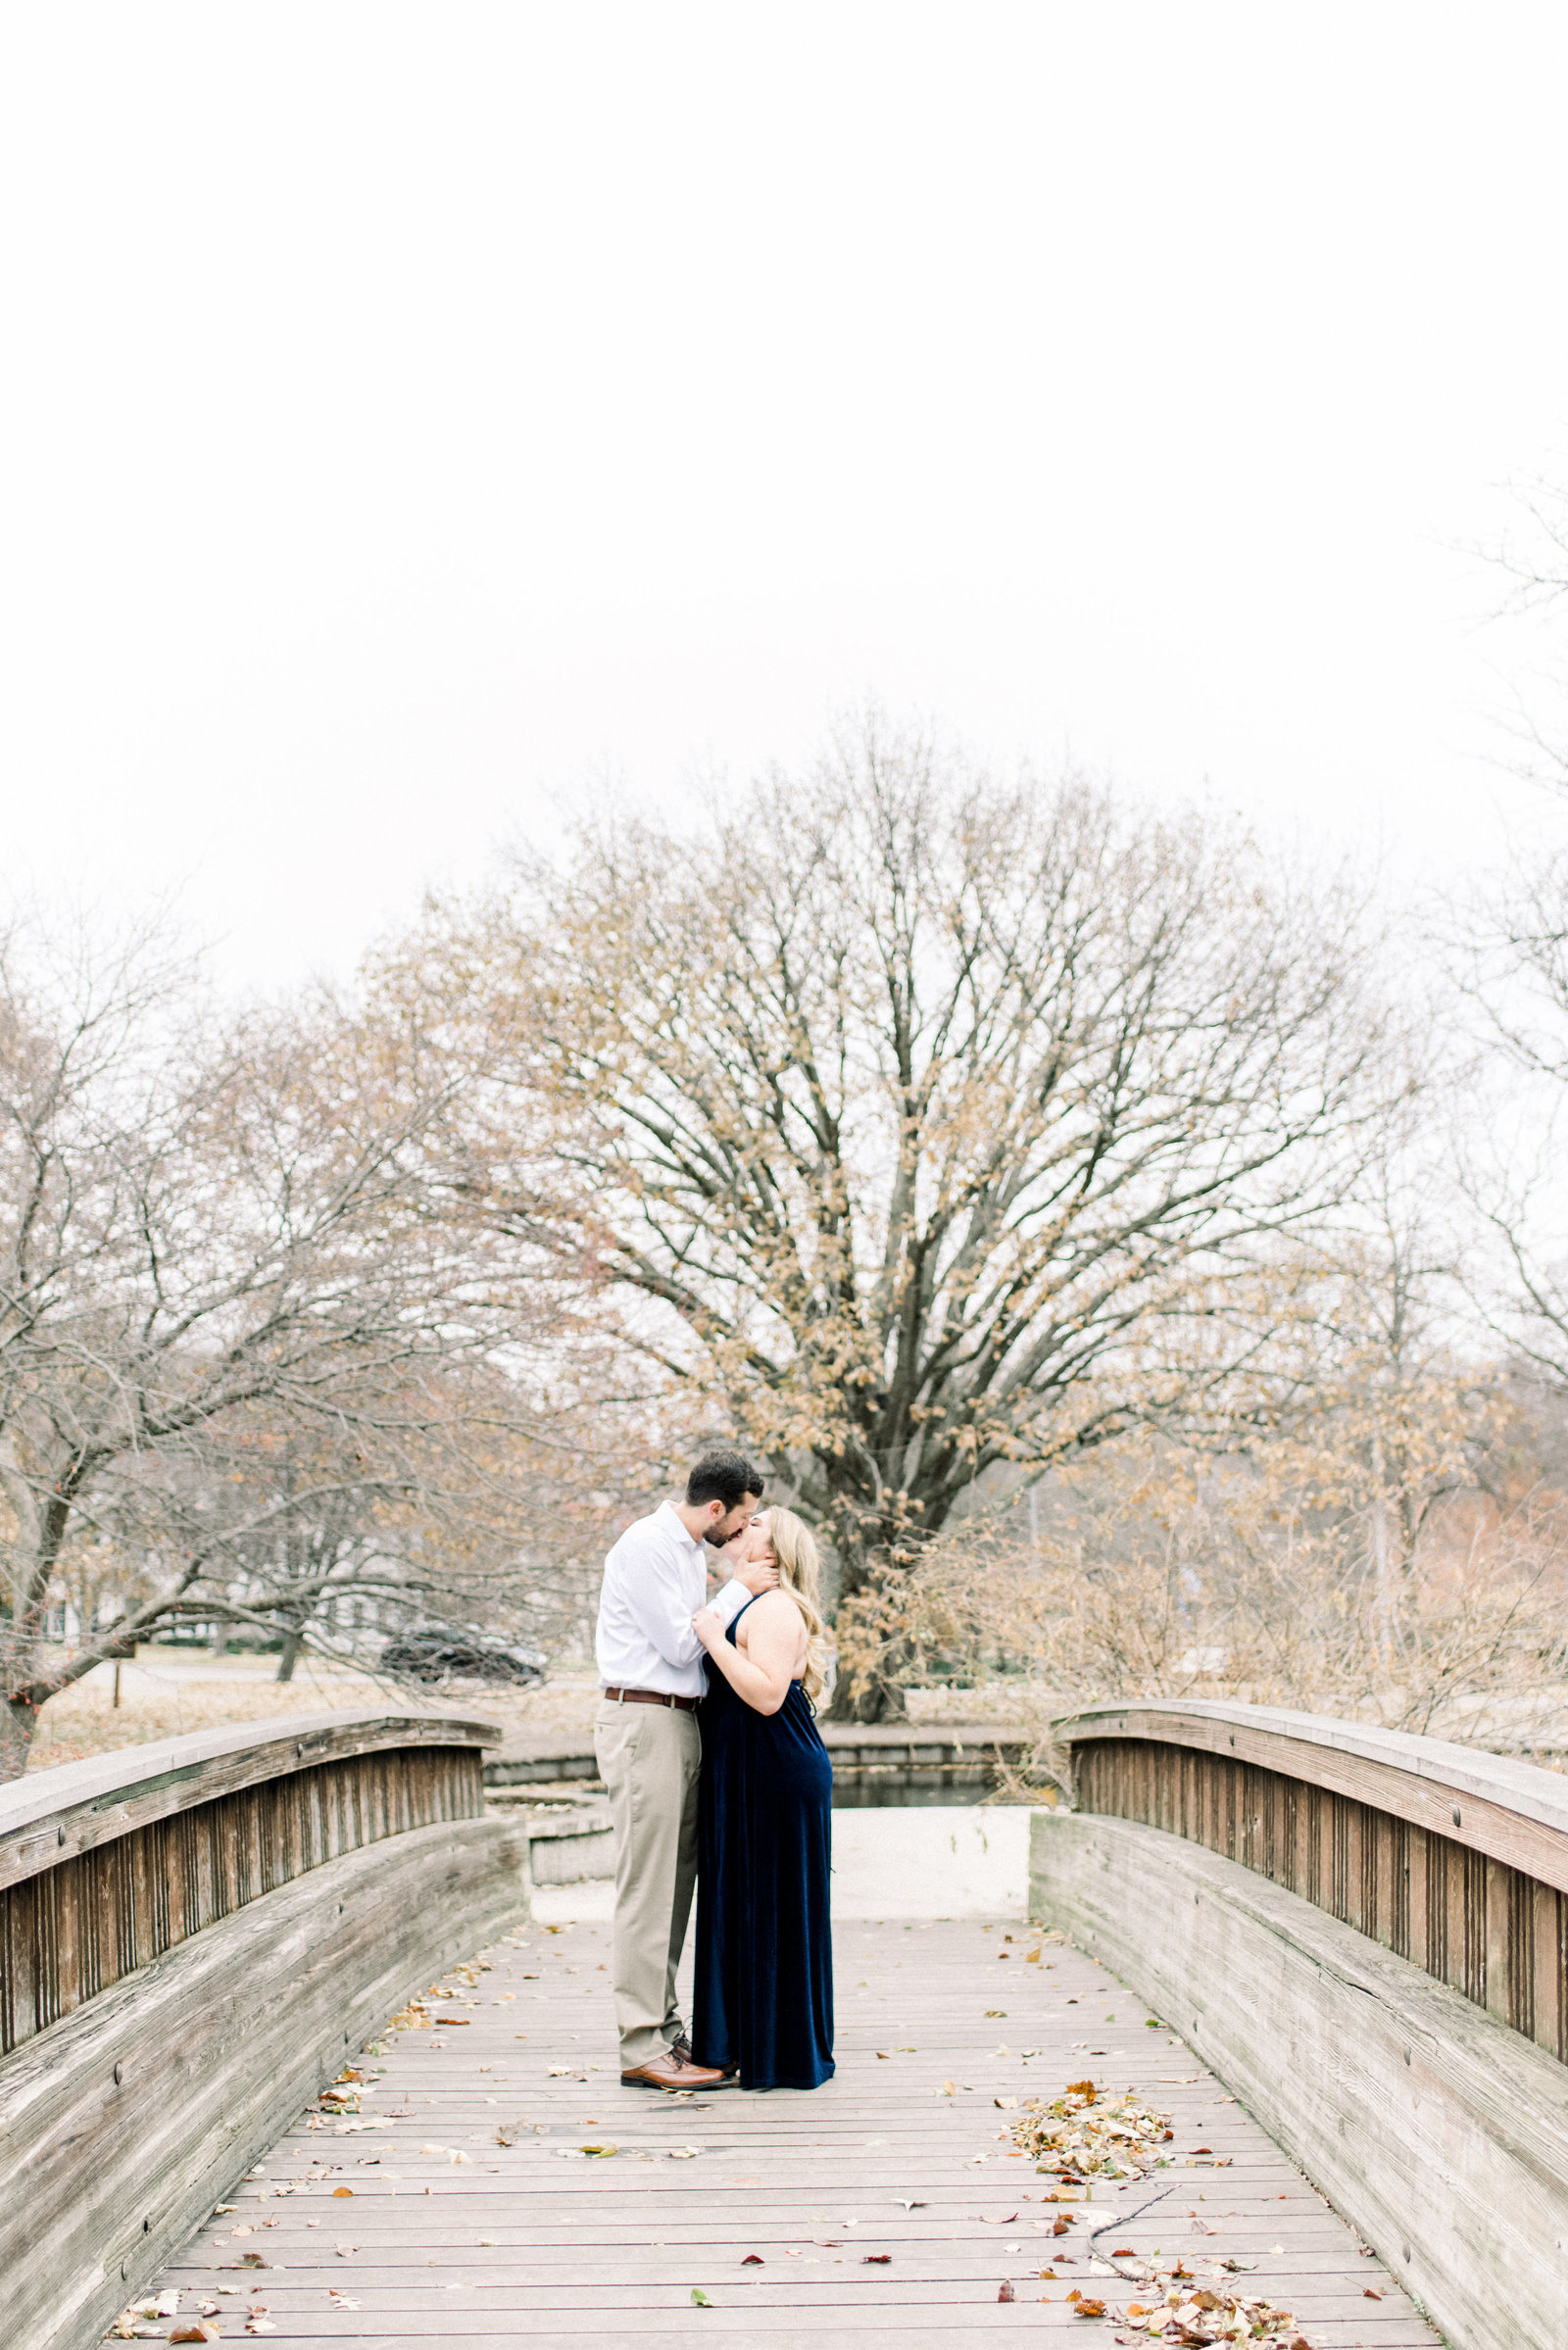 Winter_Engagement_Jacob_Loose_Pakr_Kansas_City_Elena+David-11